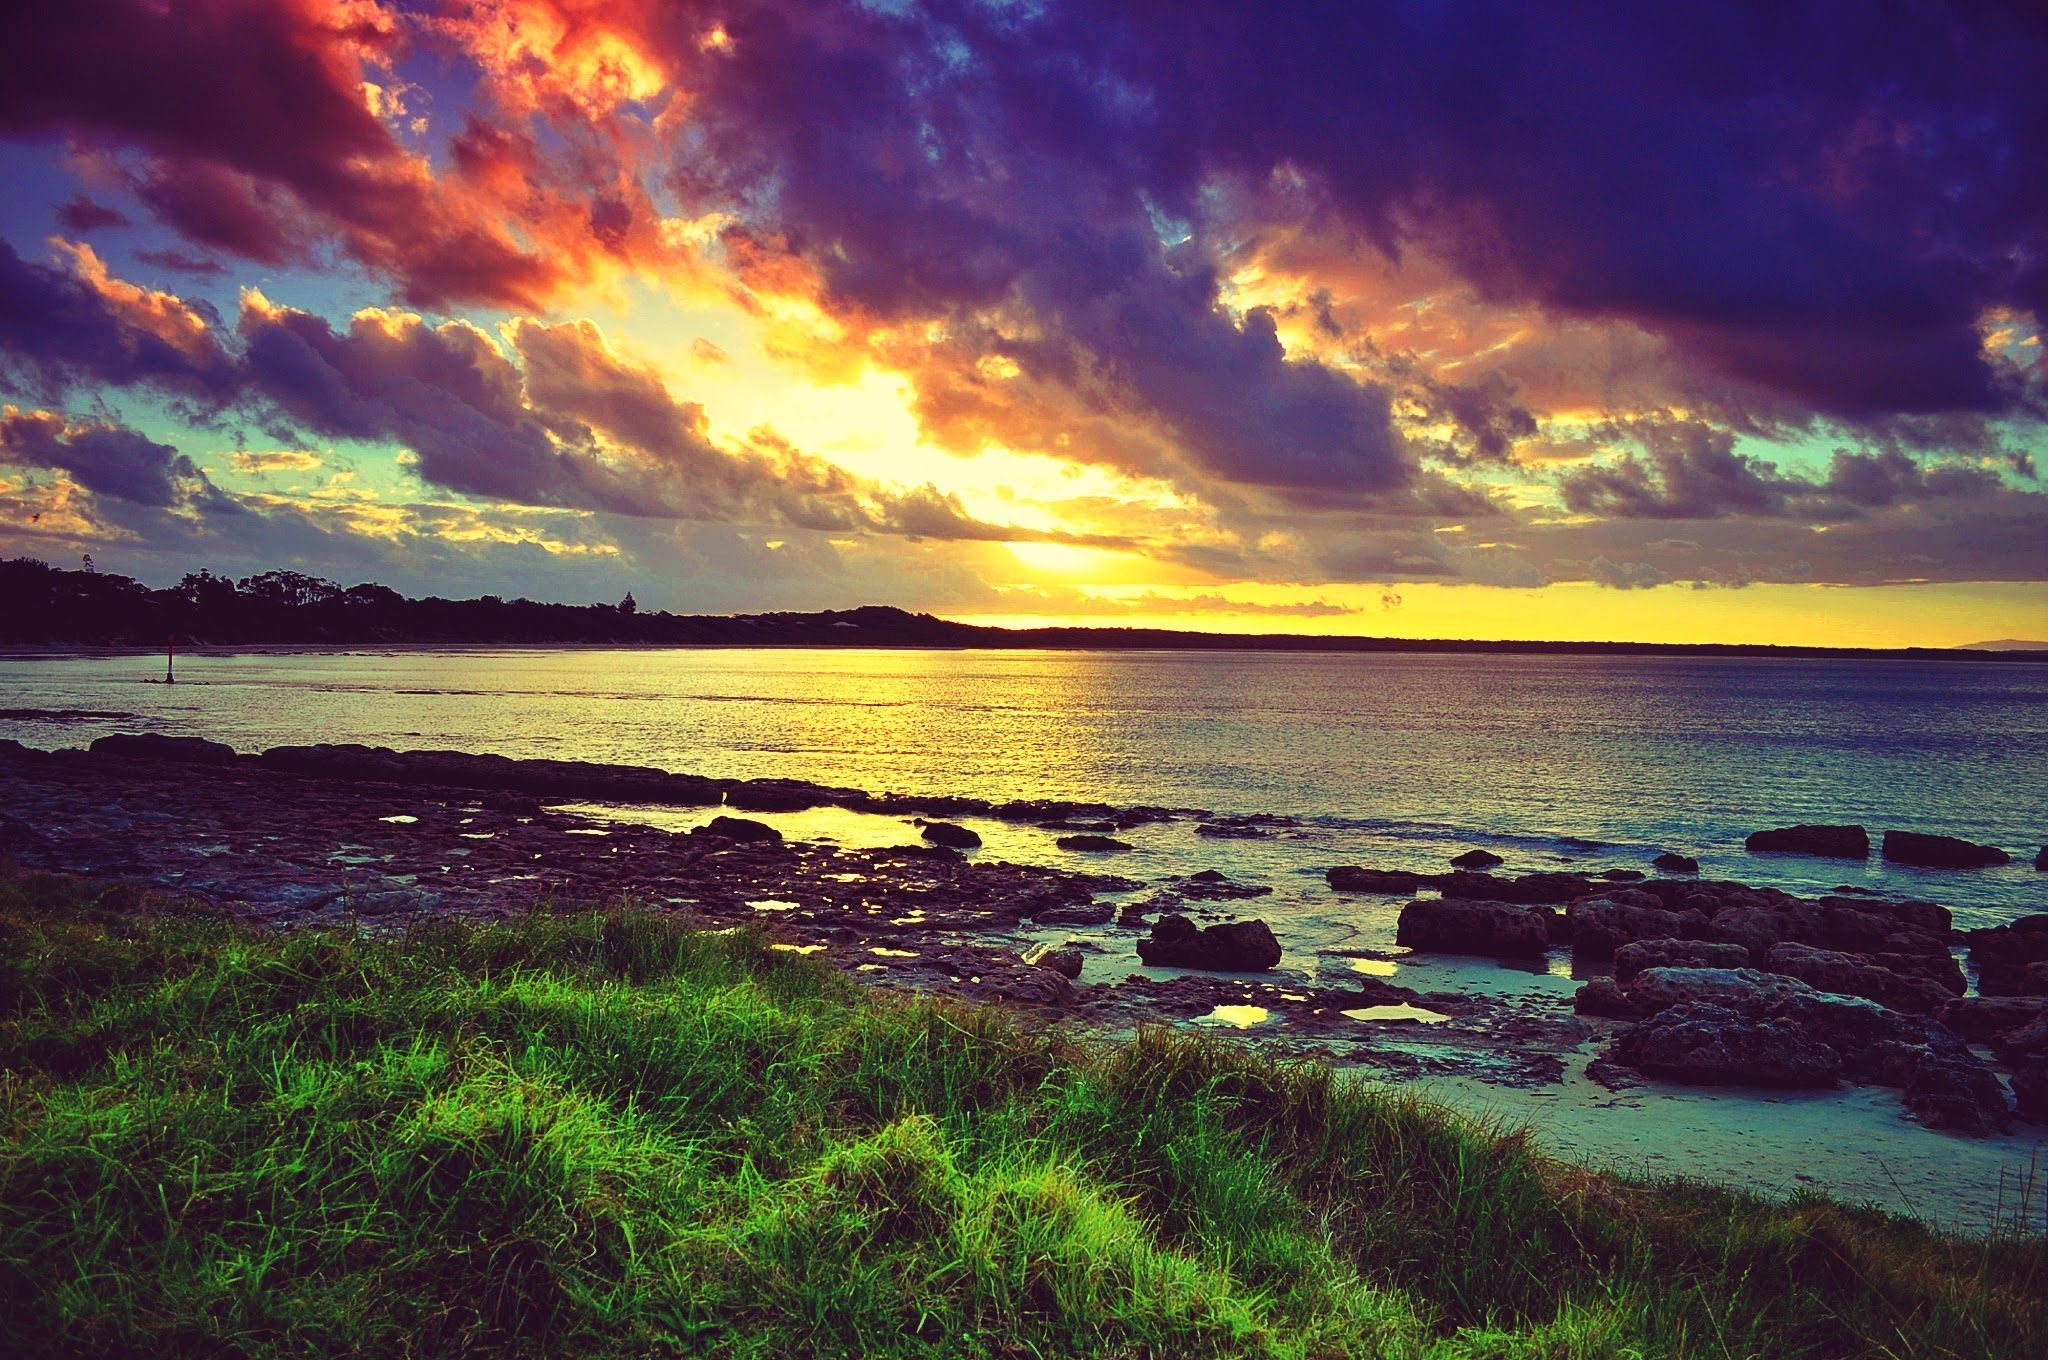 Landscape Photography: Capturing the Perfect Sunset - YouTube